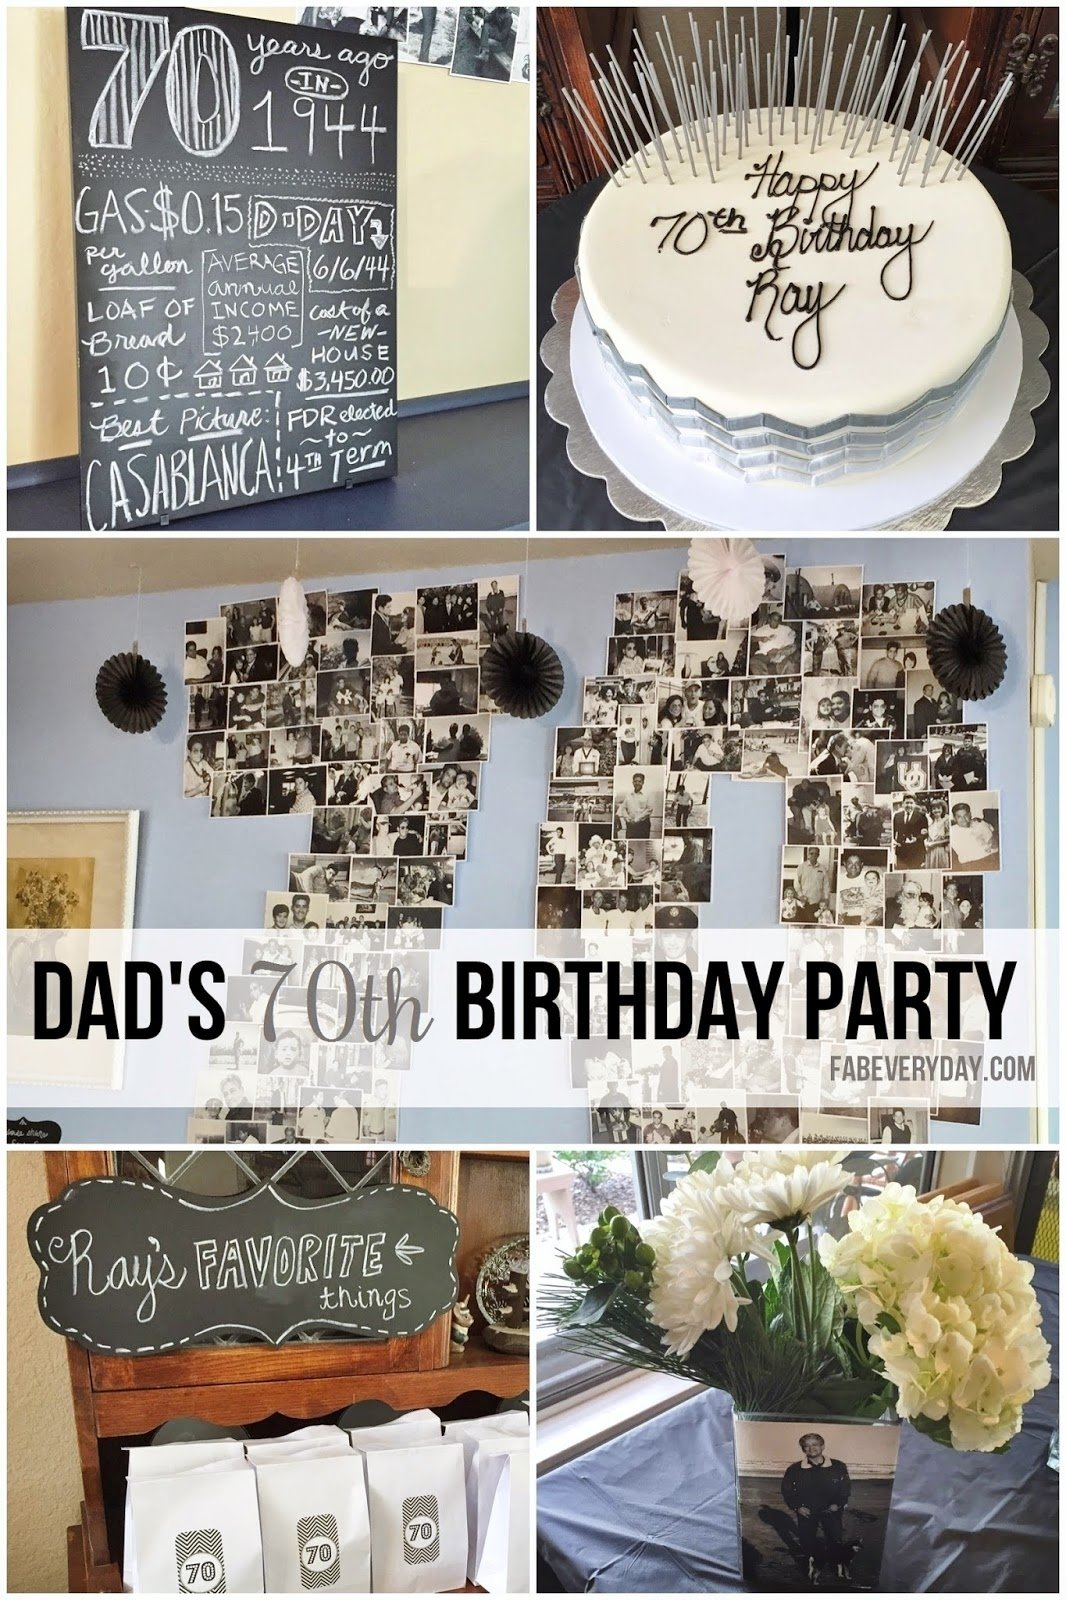 10 Great Surprise 70Th Birthday Party Ideas fab everyday because everyday life should be fabulous www 3 2021